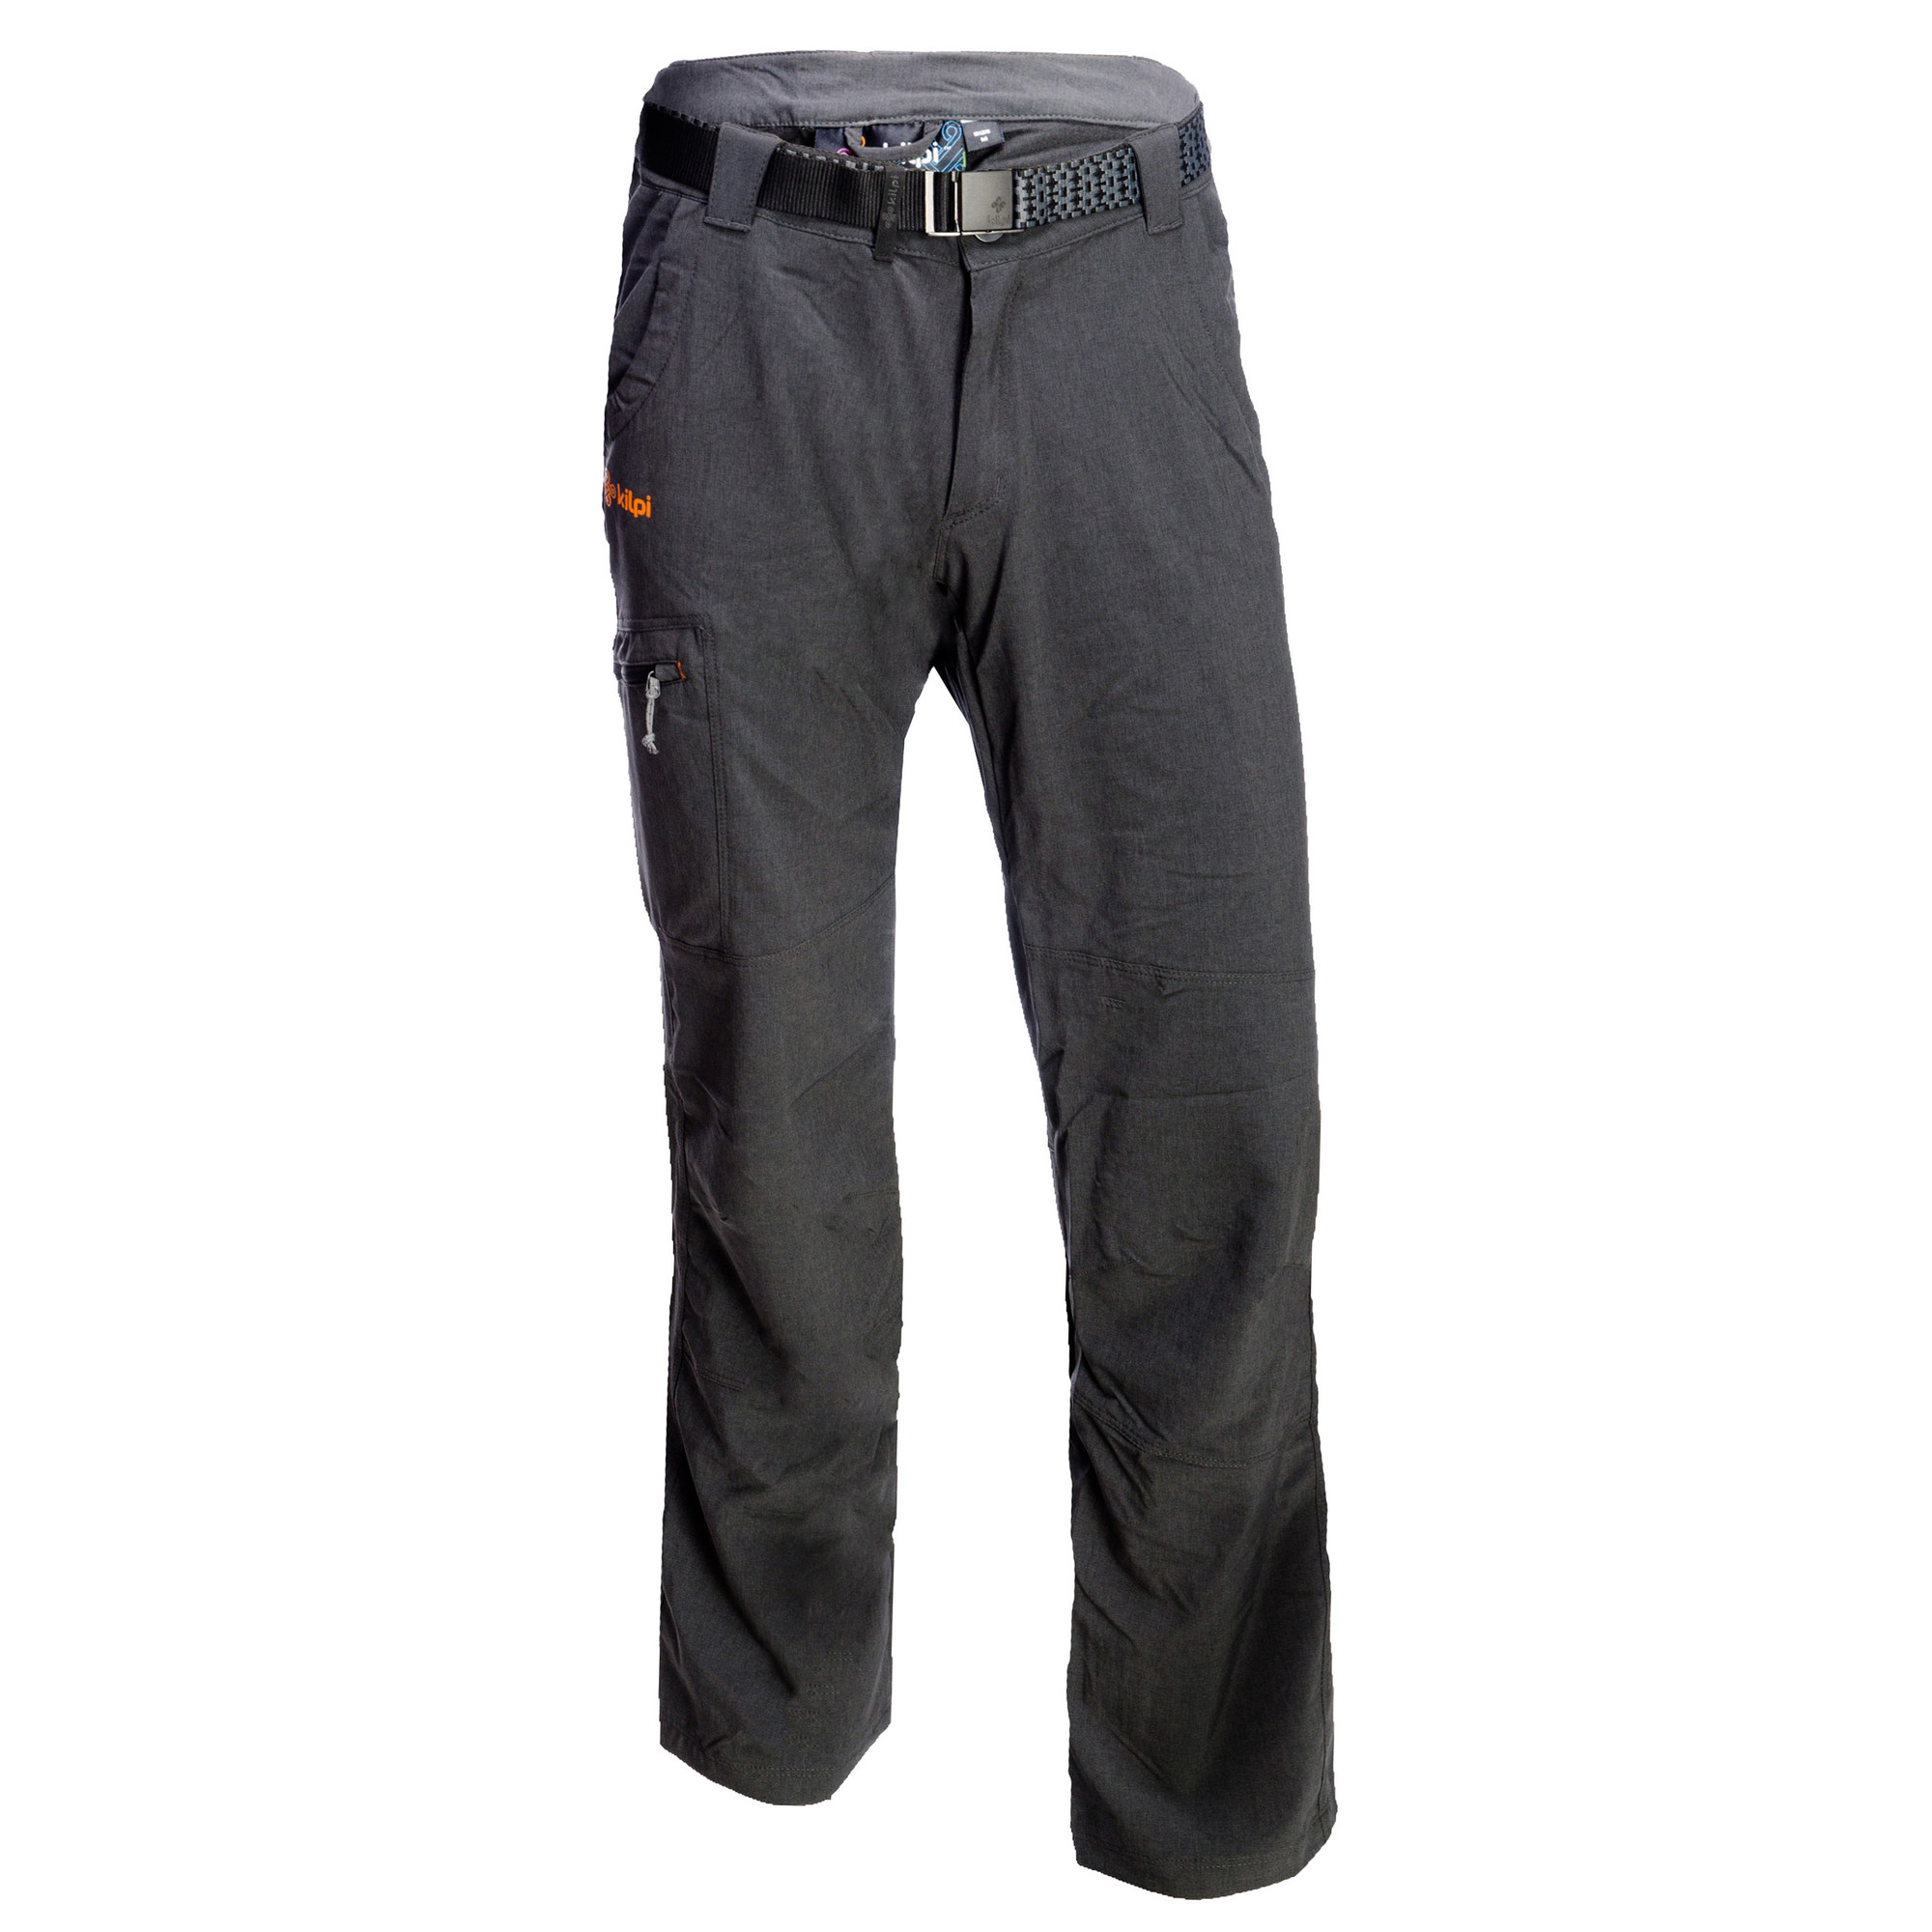 Sportbroek Heren Kilpi Rocco Outdoor Sportbroek Heren Grijs